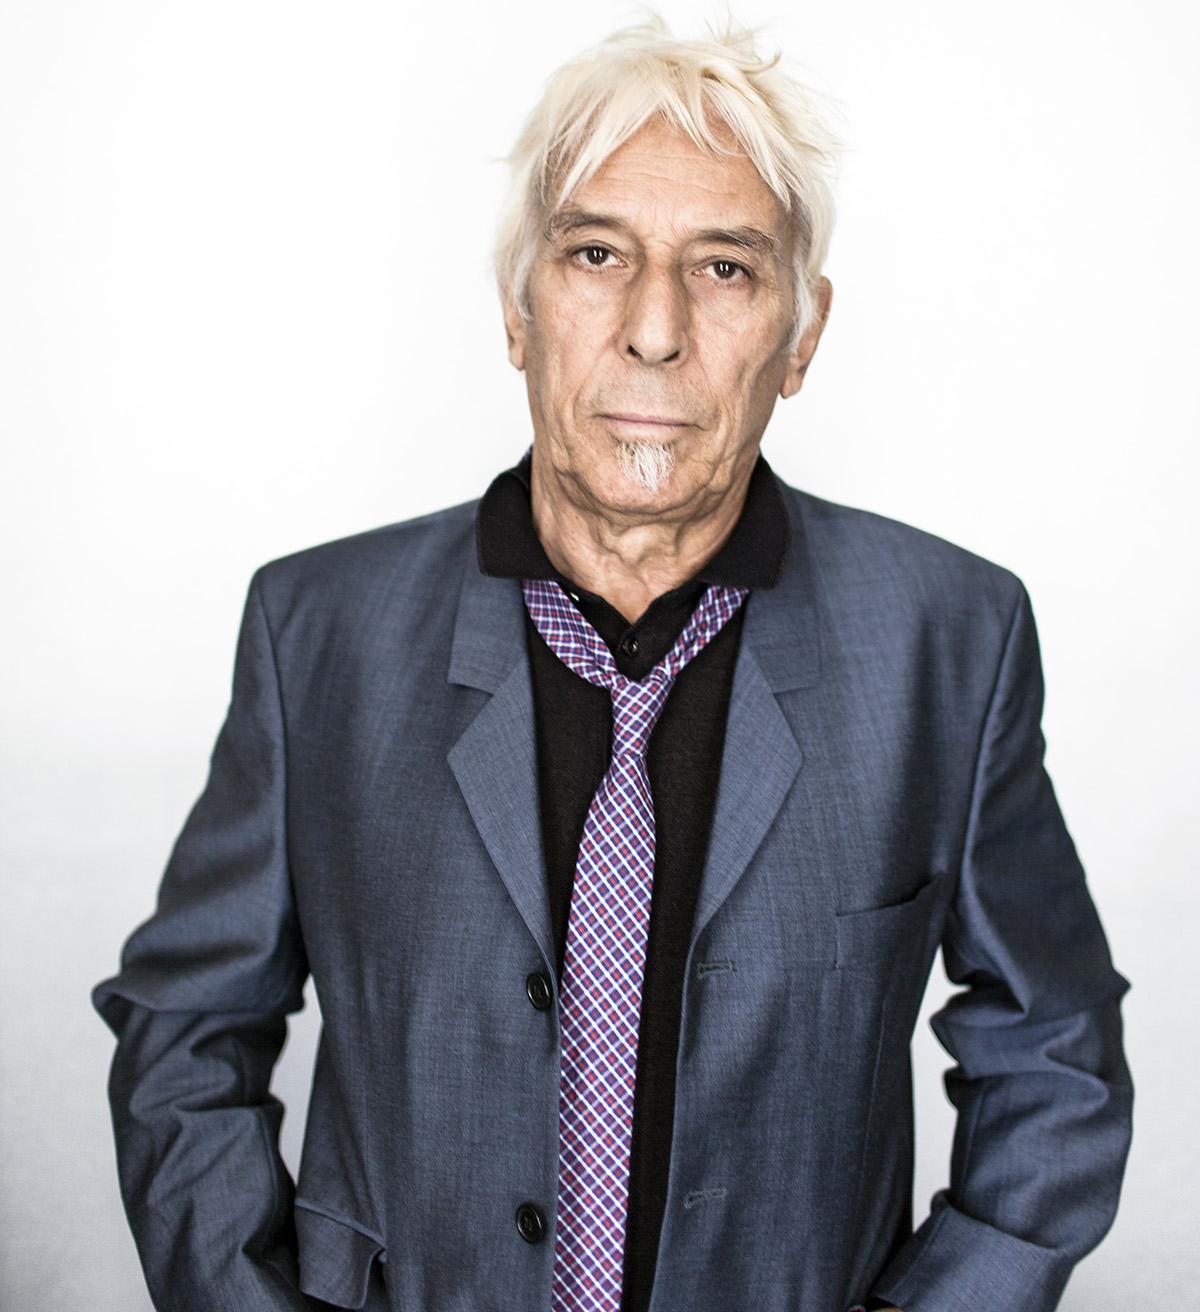 John Cale DLWP Bexhill